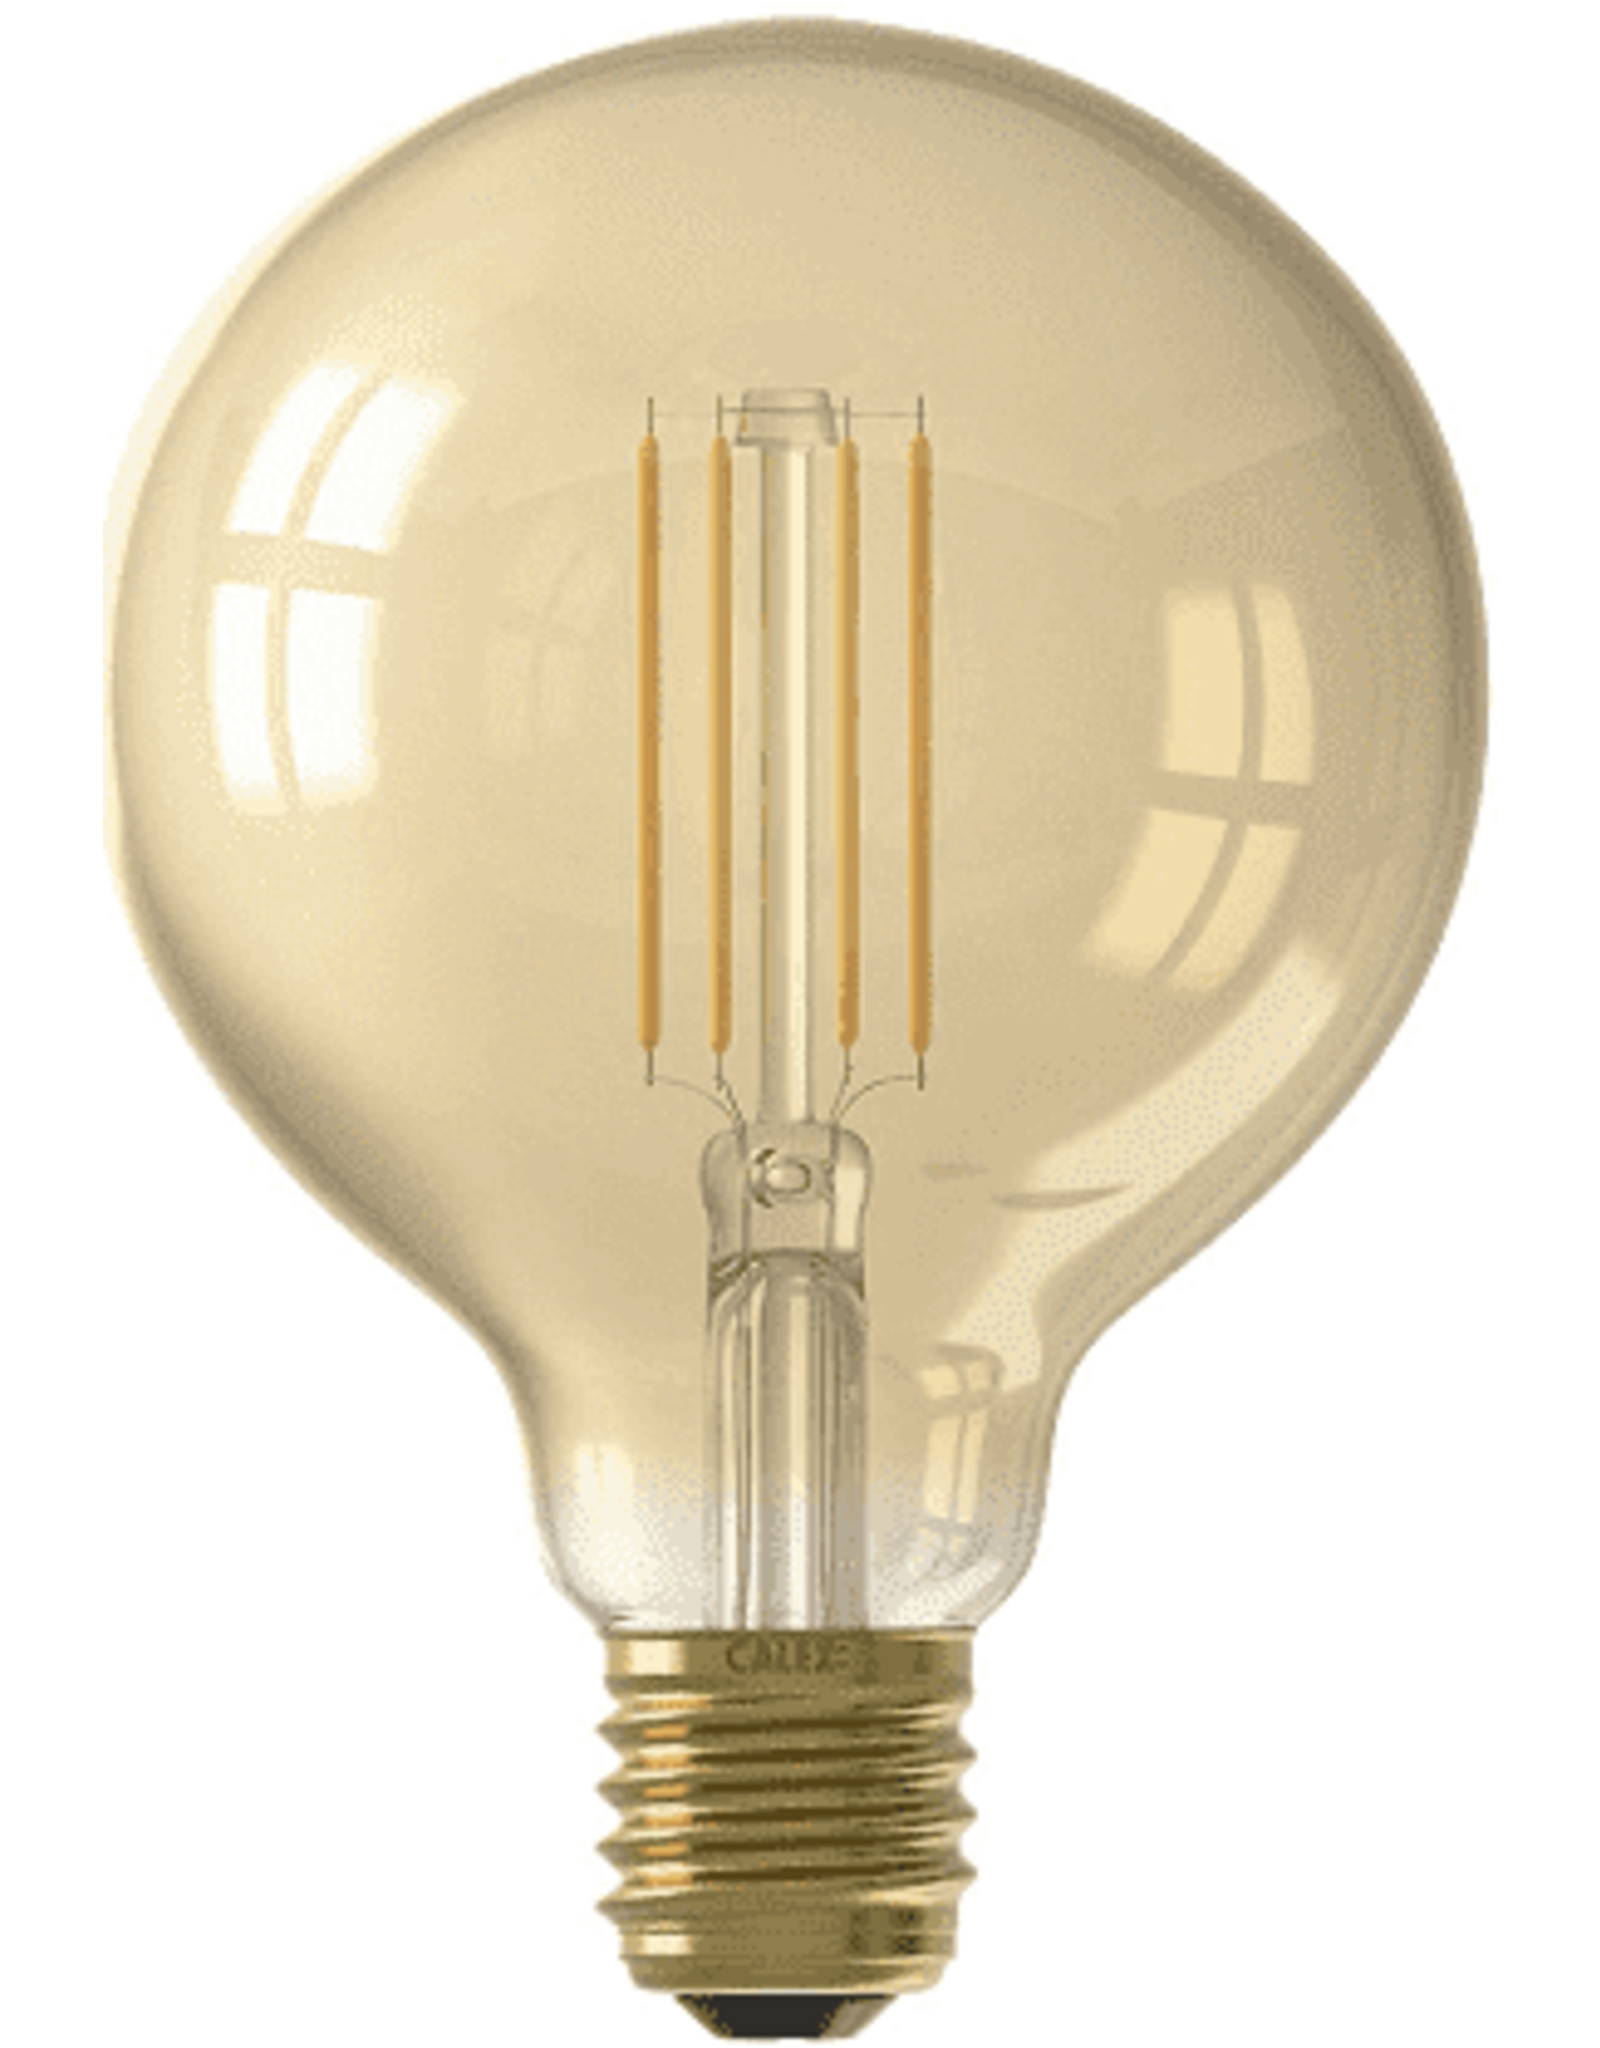 Calex LED Full Glass LongFilament Globe Lamp 220-240V 4W 320lm E27 G95, Gold 2100K Dimmable, energy label A+